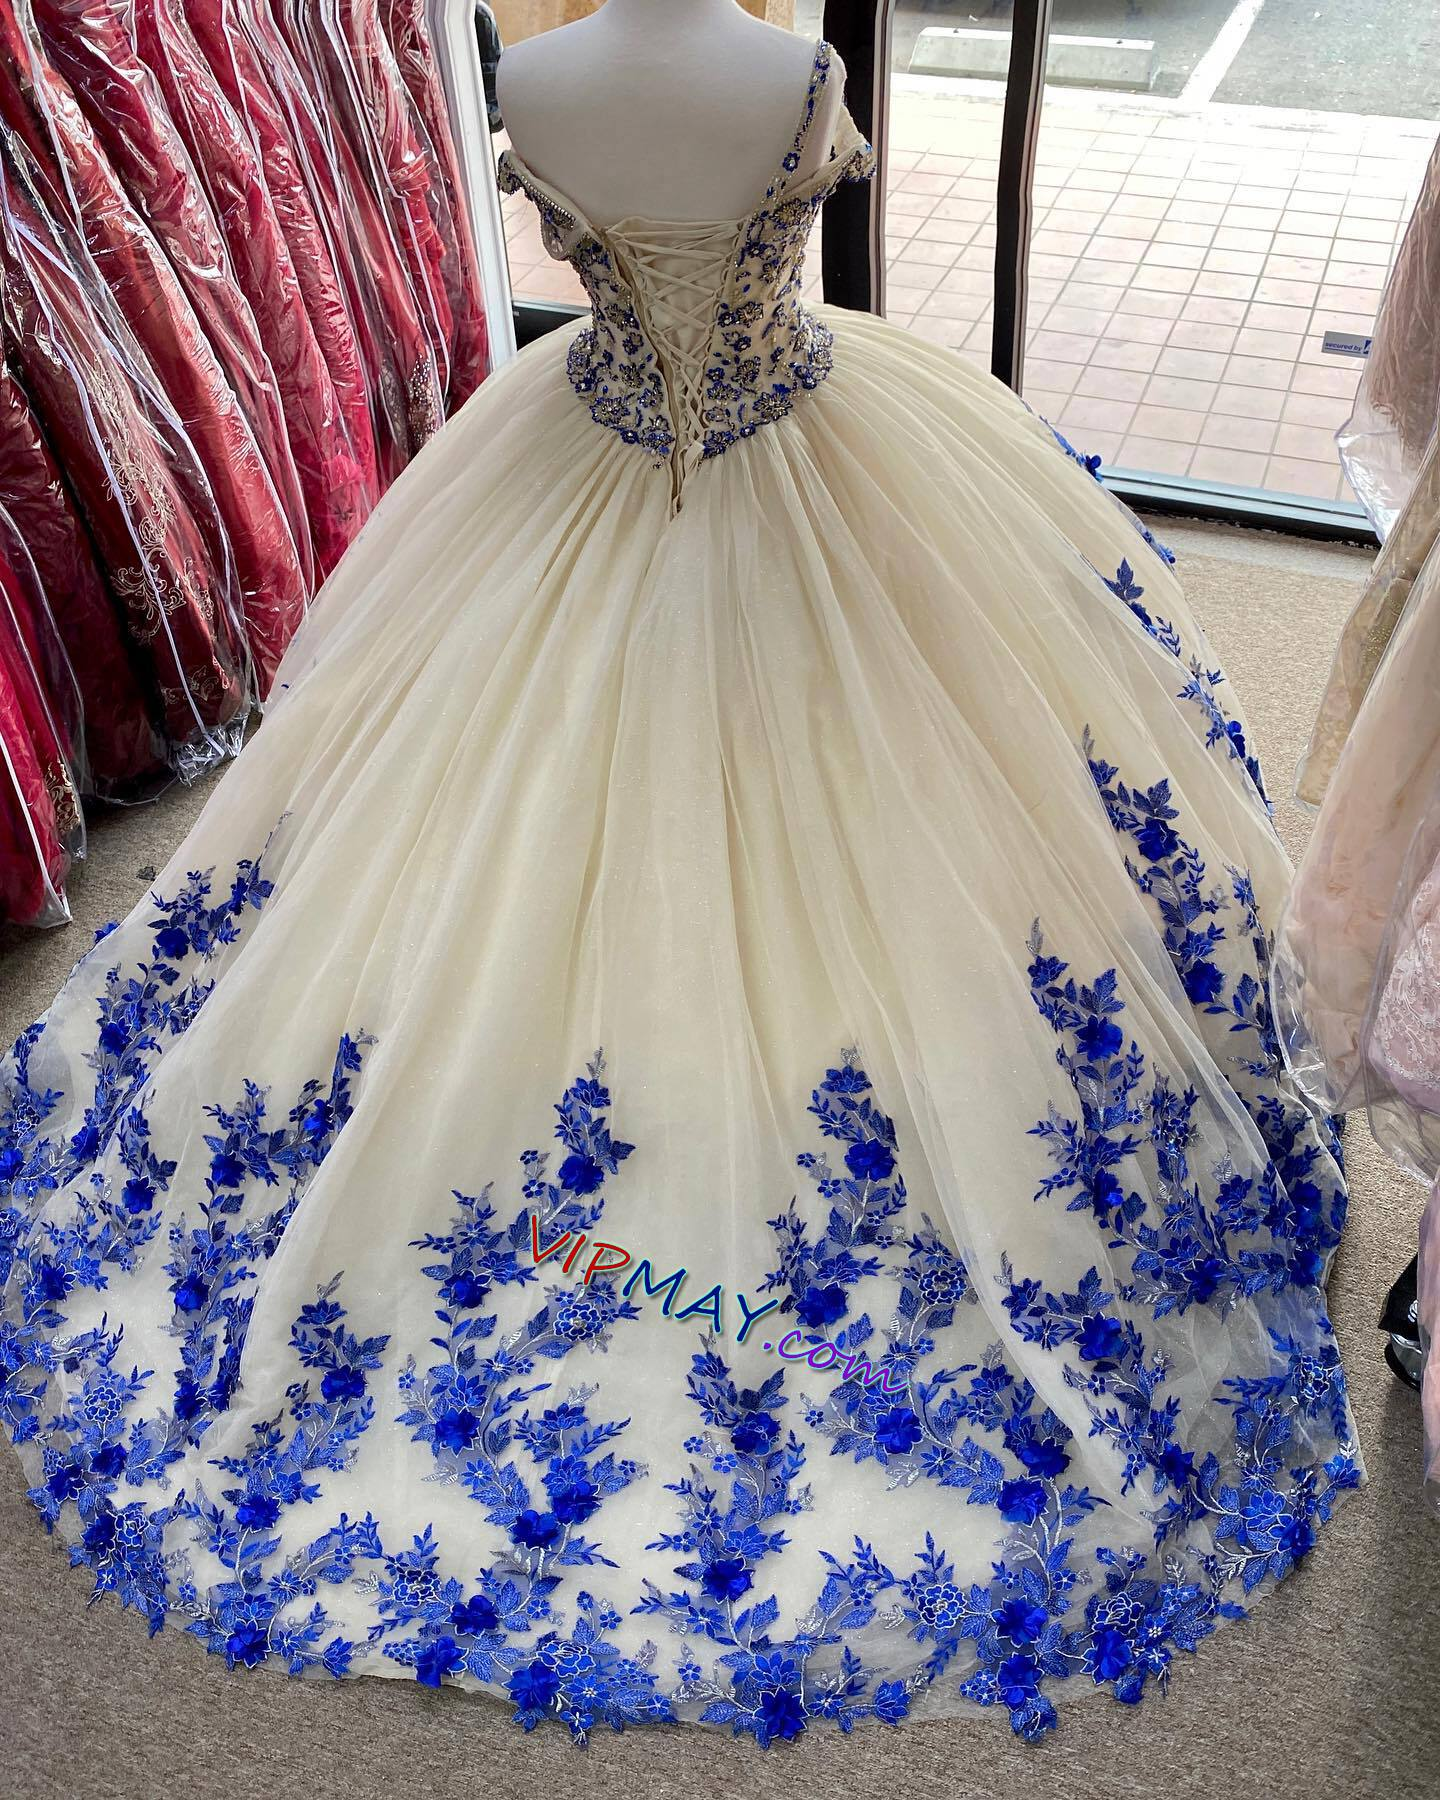 champagne colored quinceanera dress,in royal blue quinceanera dress,tulle skirt quinceanera dress,3d floral applique quinceanera dress,beaded bodice quinceanera dress,off shoulder quinceanera dress,2021 quinceanera dress,stores that sell quinceanera dress,cheap quinceanera dress stores,